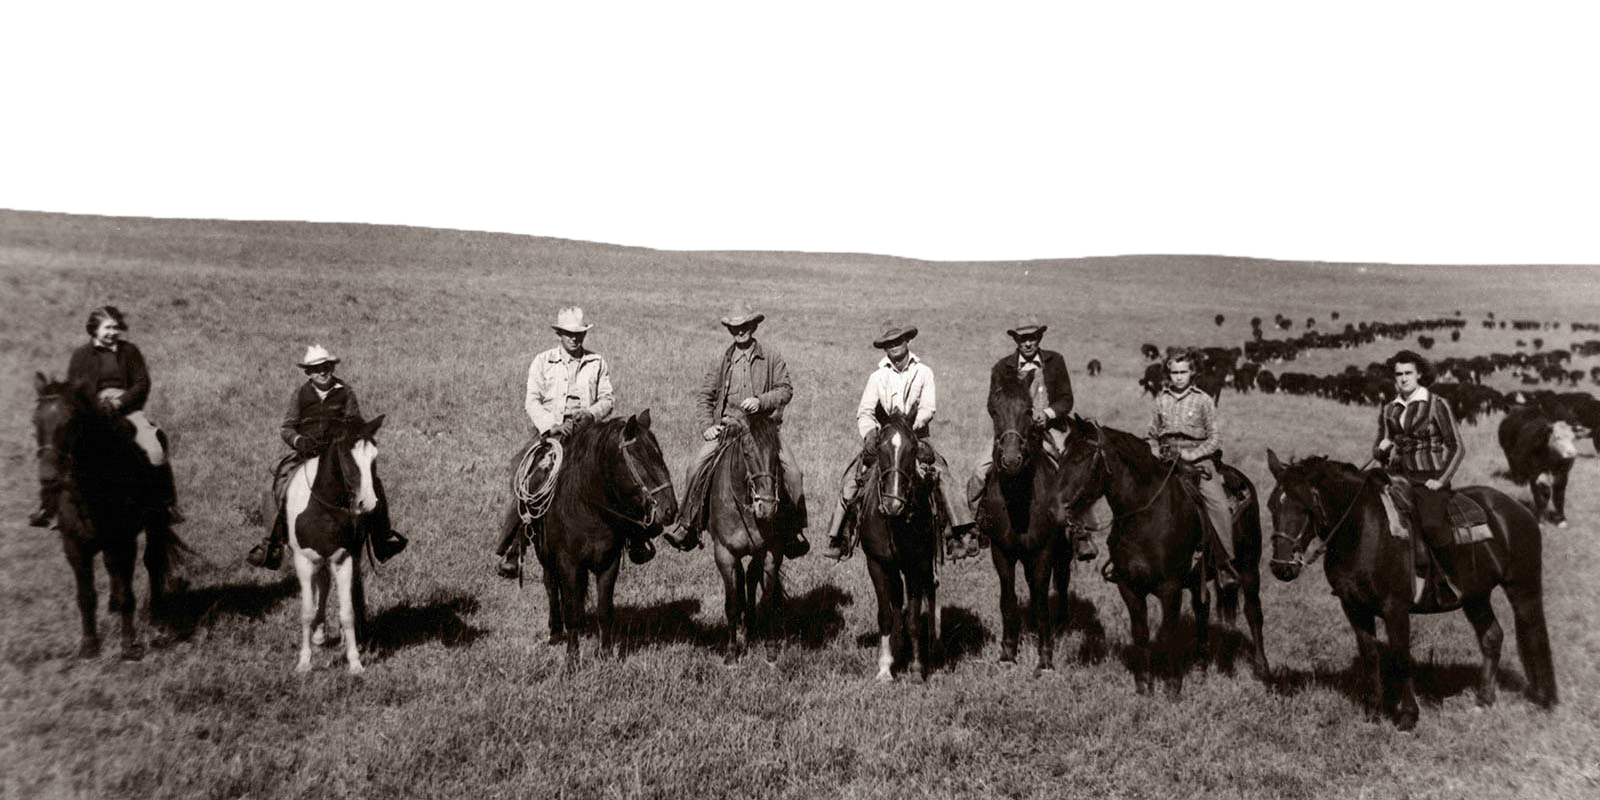 A portrait of the Roglers on horseback, lined up in front of cattle